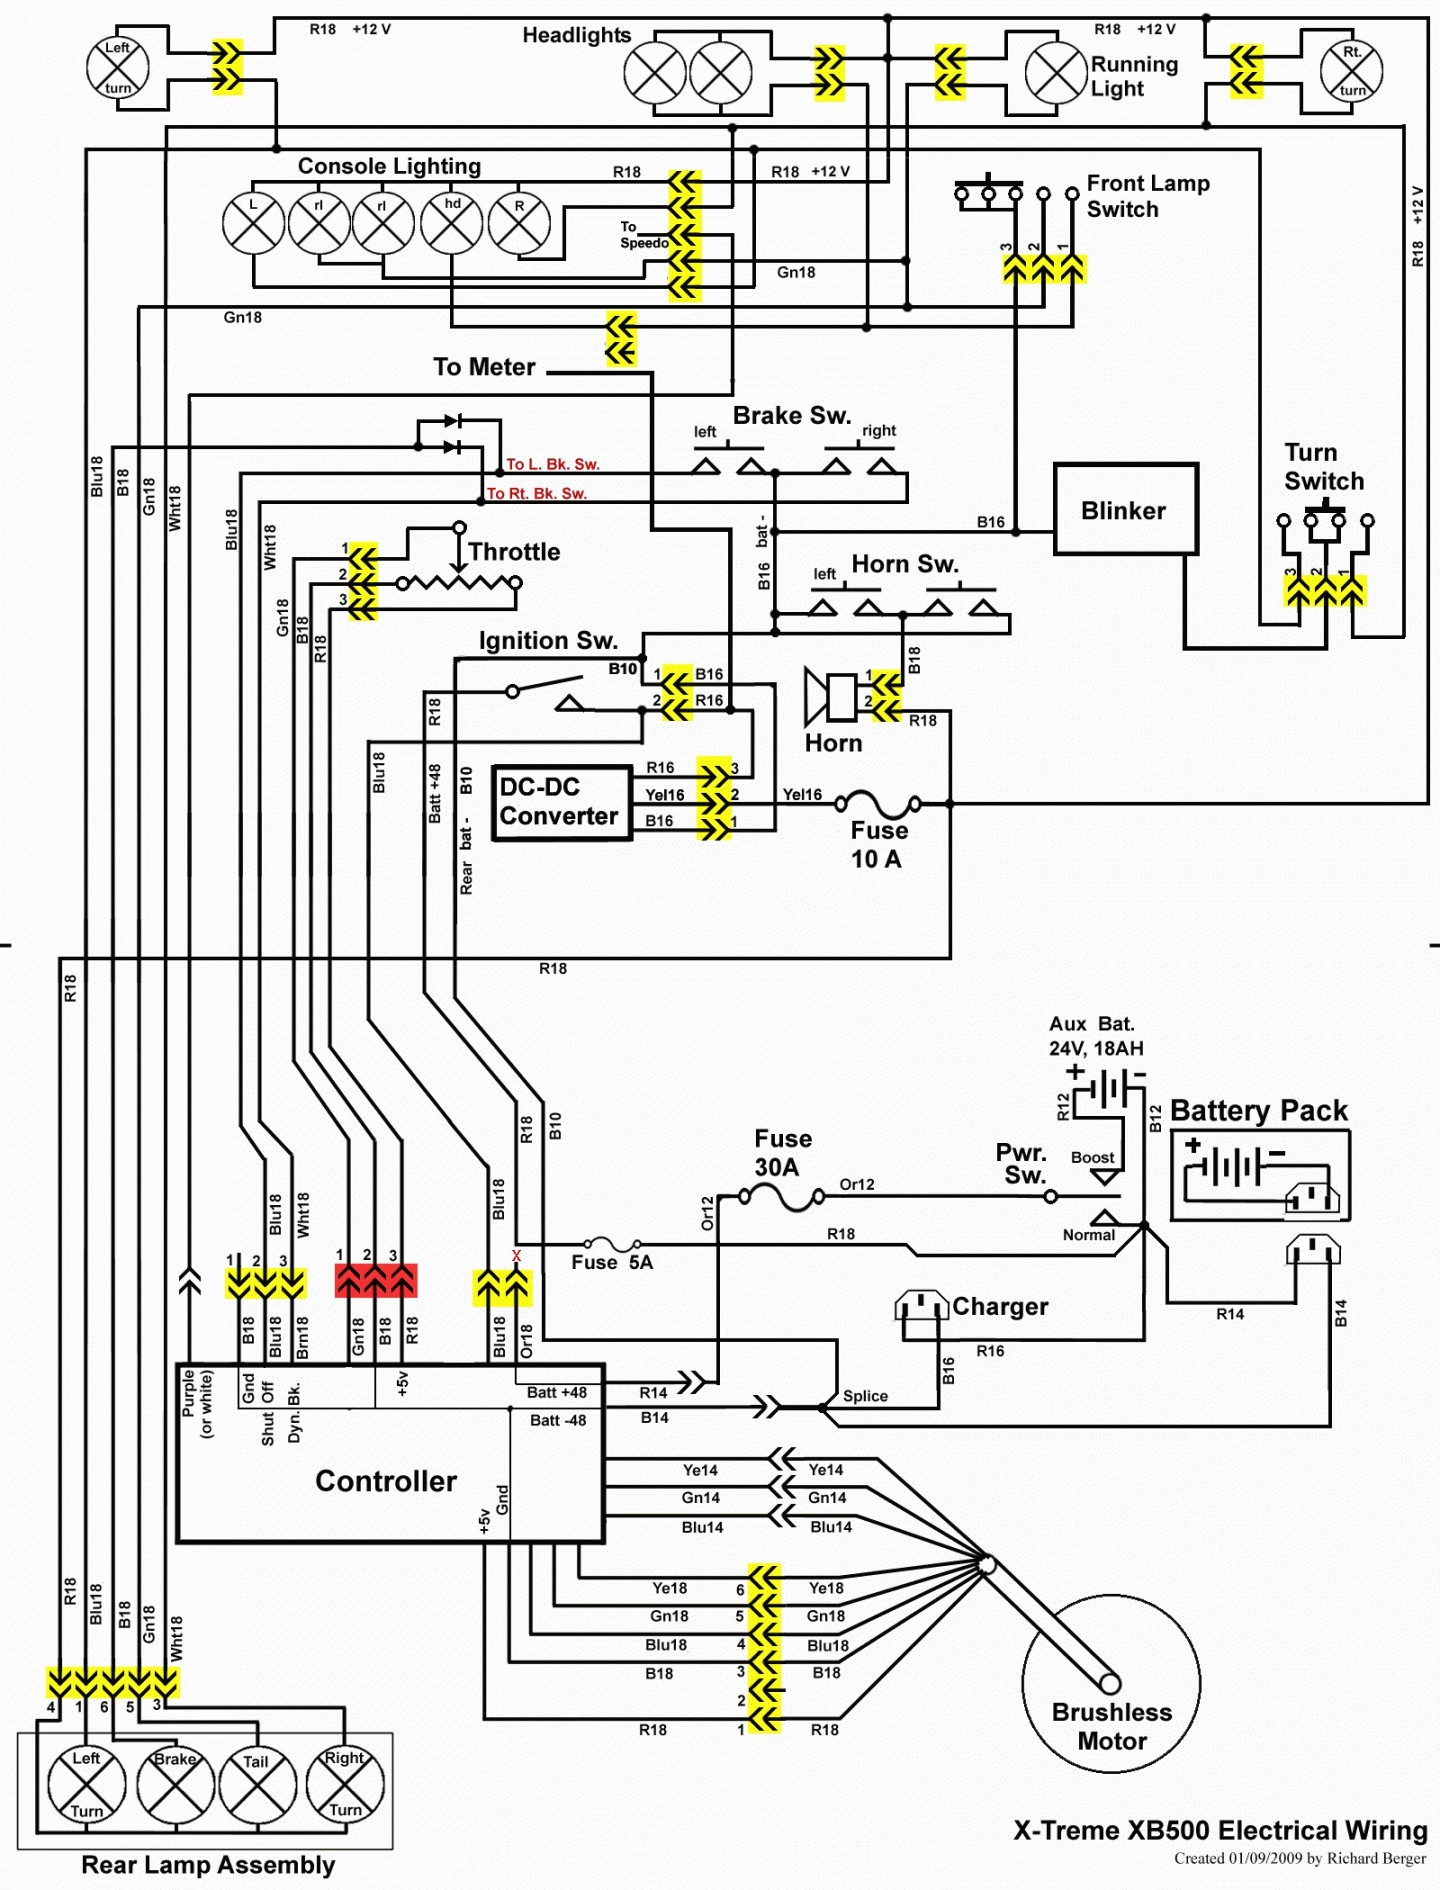 50cc Scooter Ignition Switch Wiring Diagram - Wiring Diagram Networks | 2014 Tao Tao Moped Wiring Diagram |  | Wiring Diagram Networks - blogger